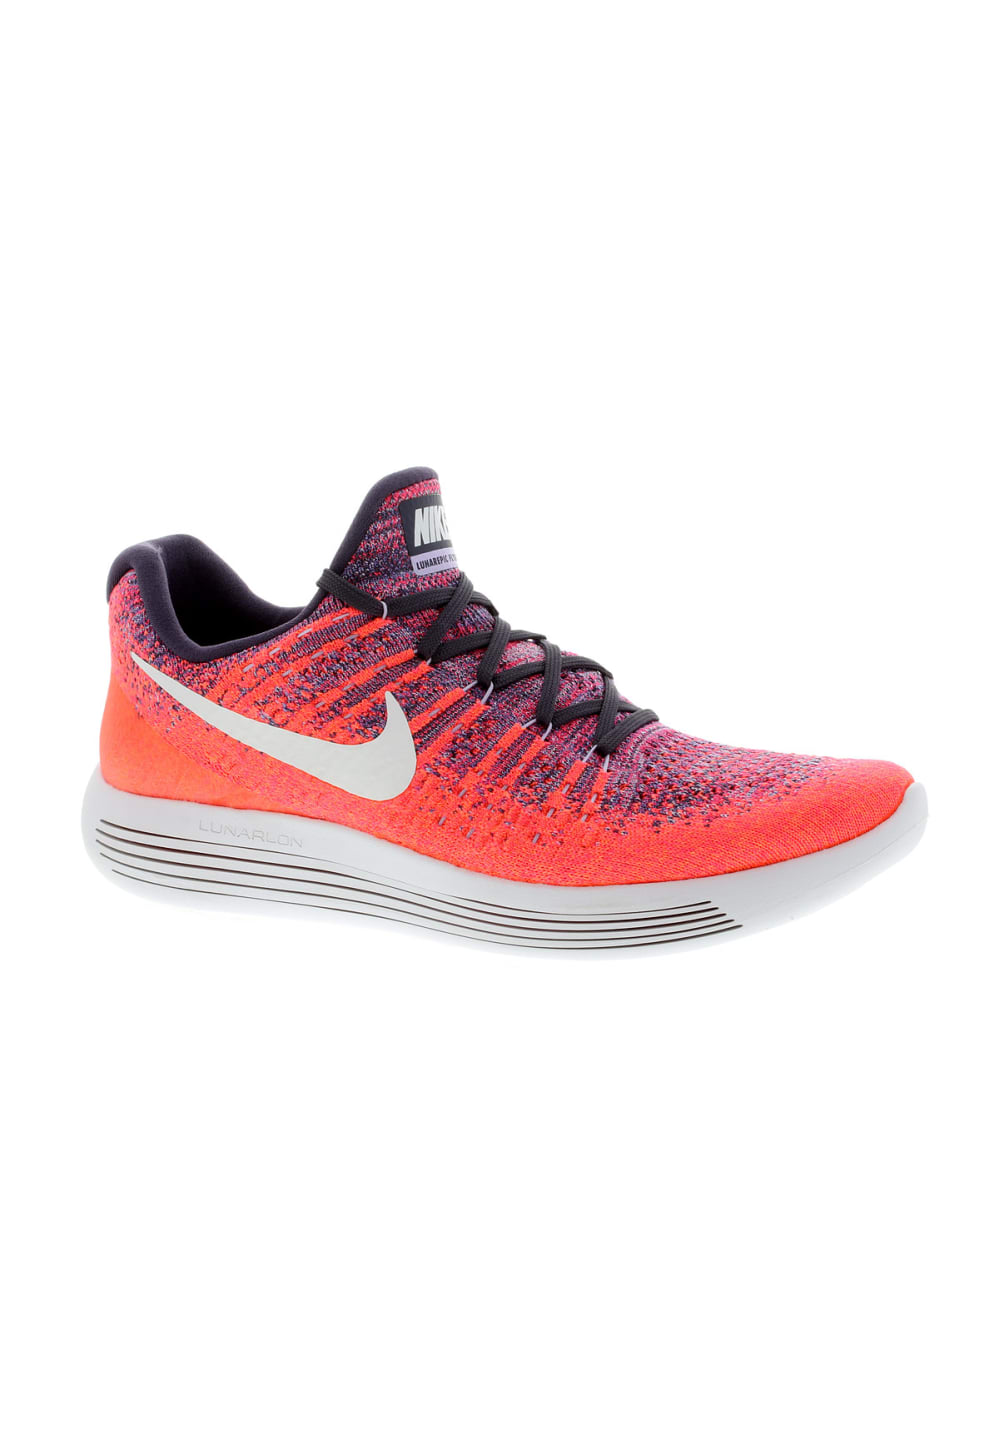 online store 37e6c f1600 Nike Lunarepic Low Flyknit 2 - Chaussures running pour Femme